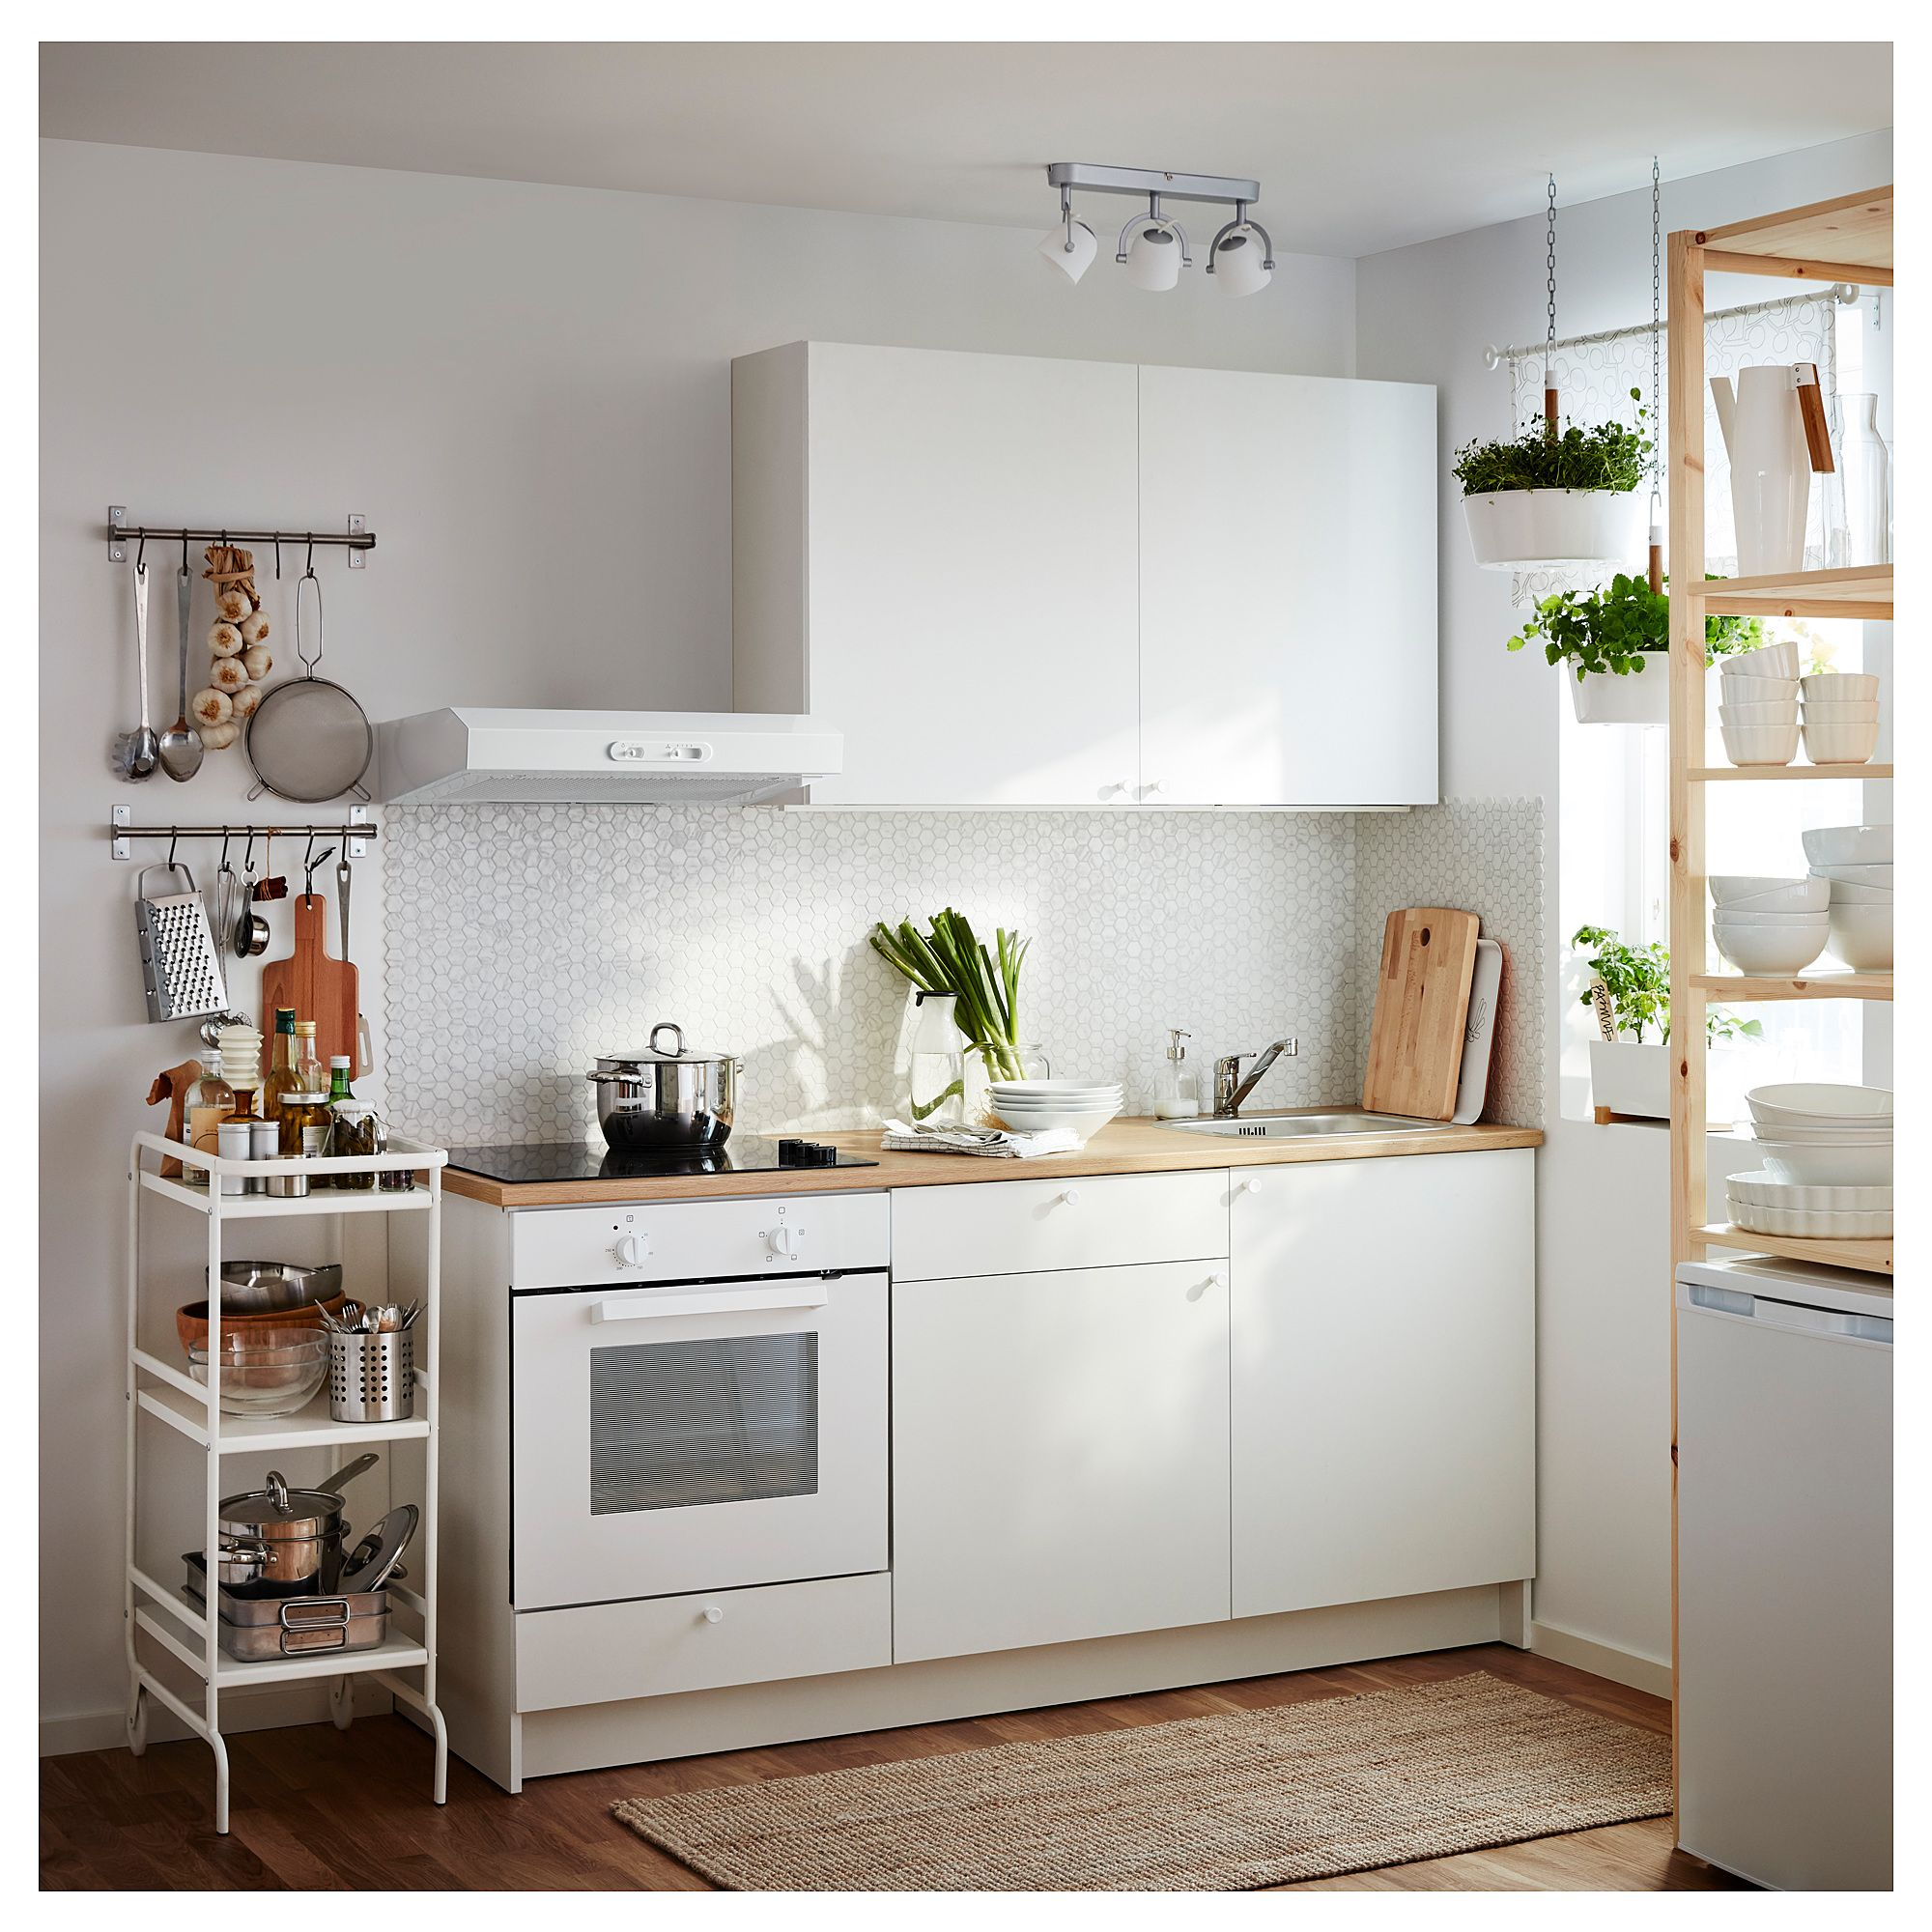 Ikea Mini Kitchen: KNOXHULT Base Cabinet With Doors And Drawer White